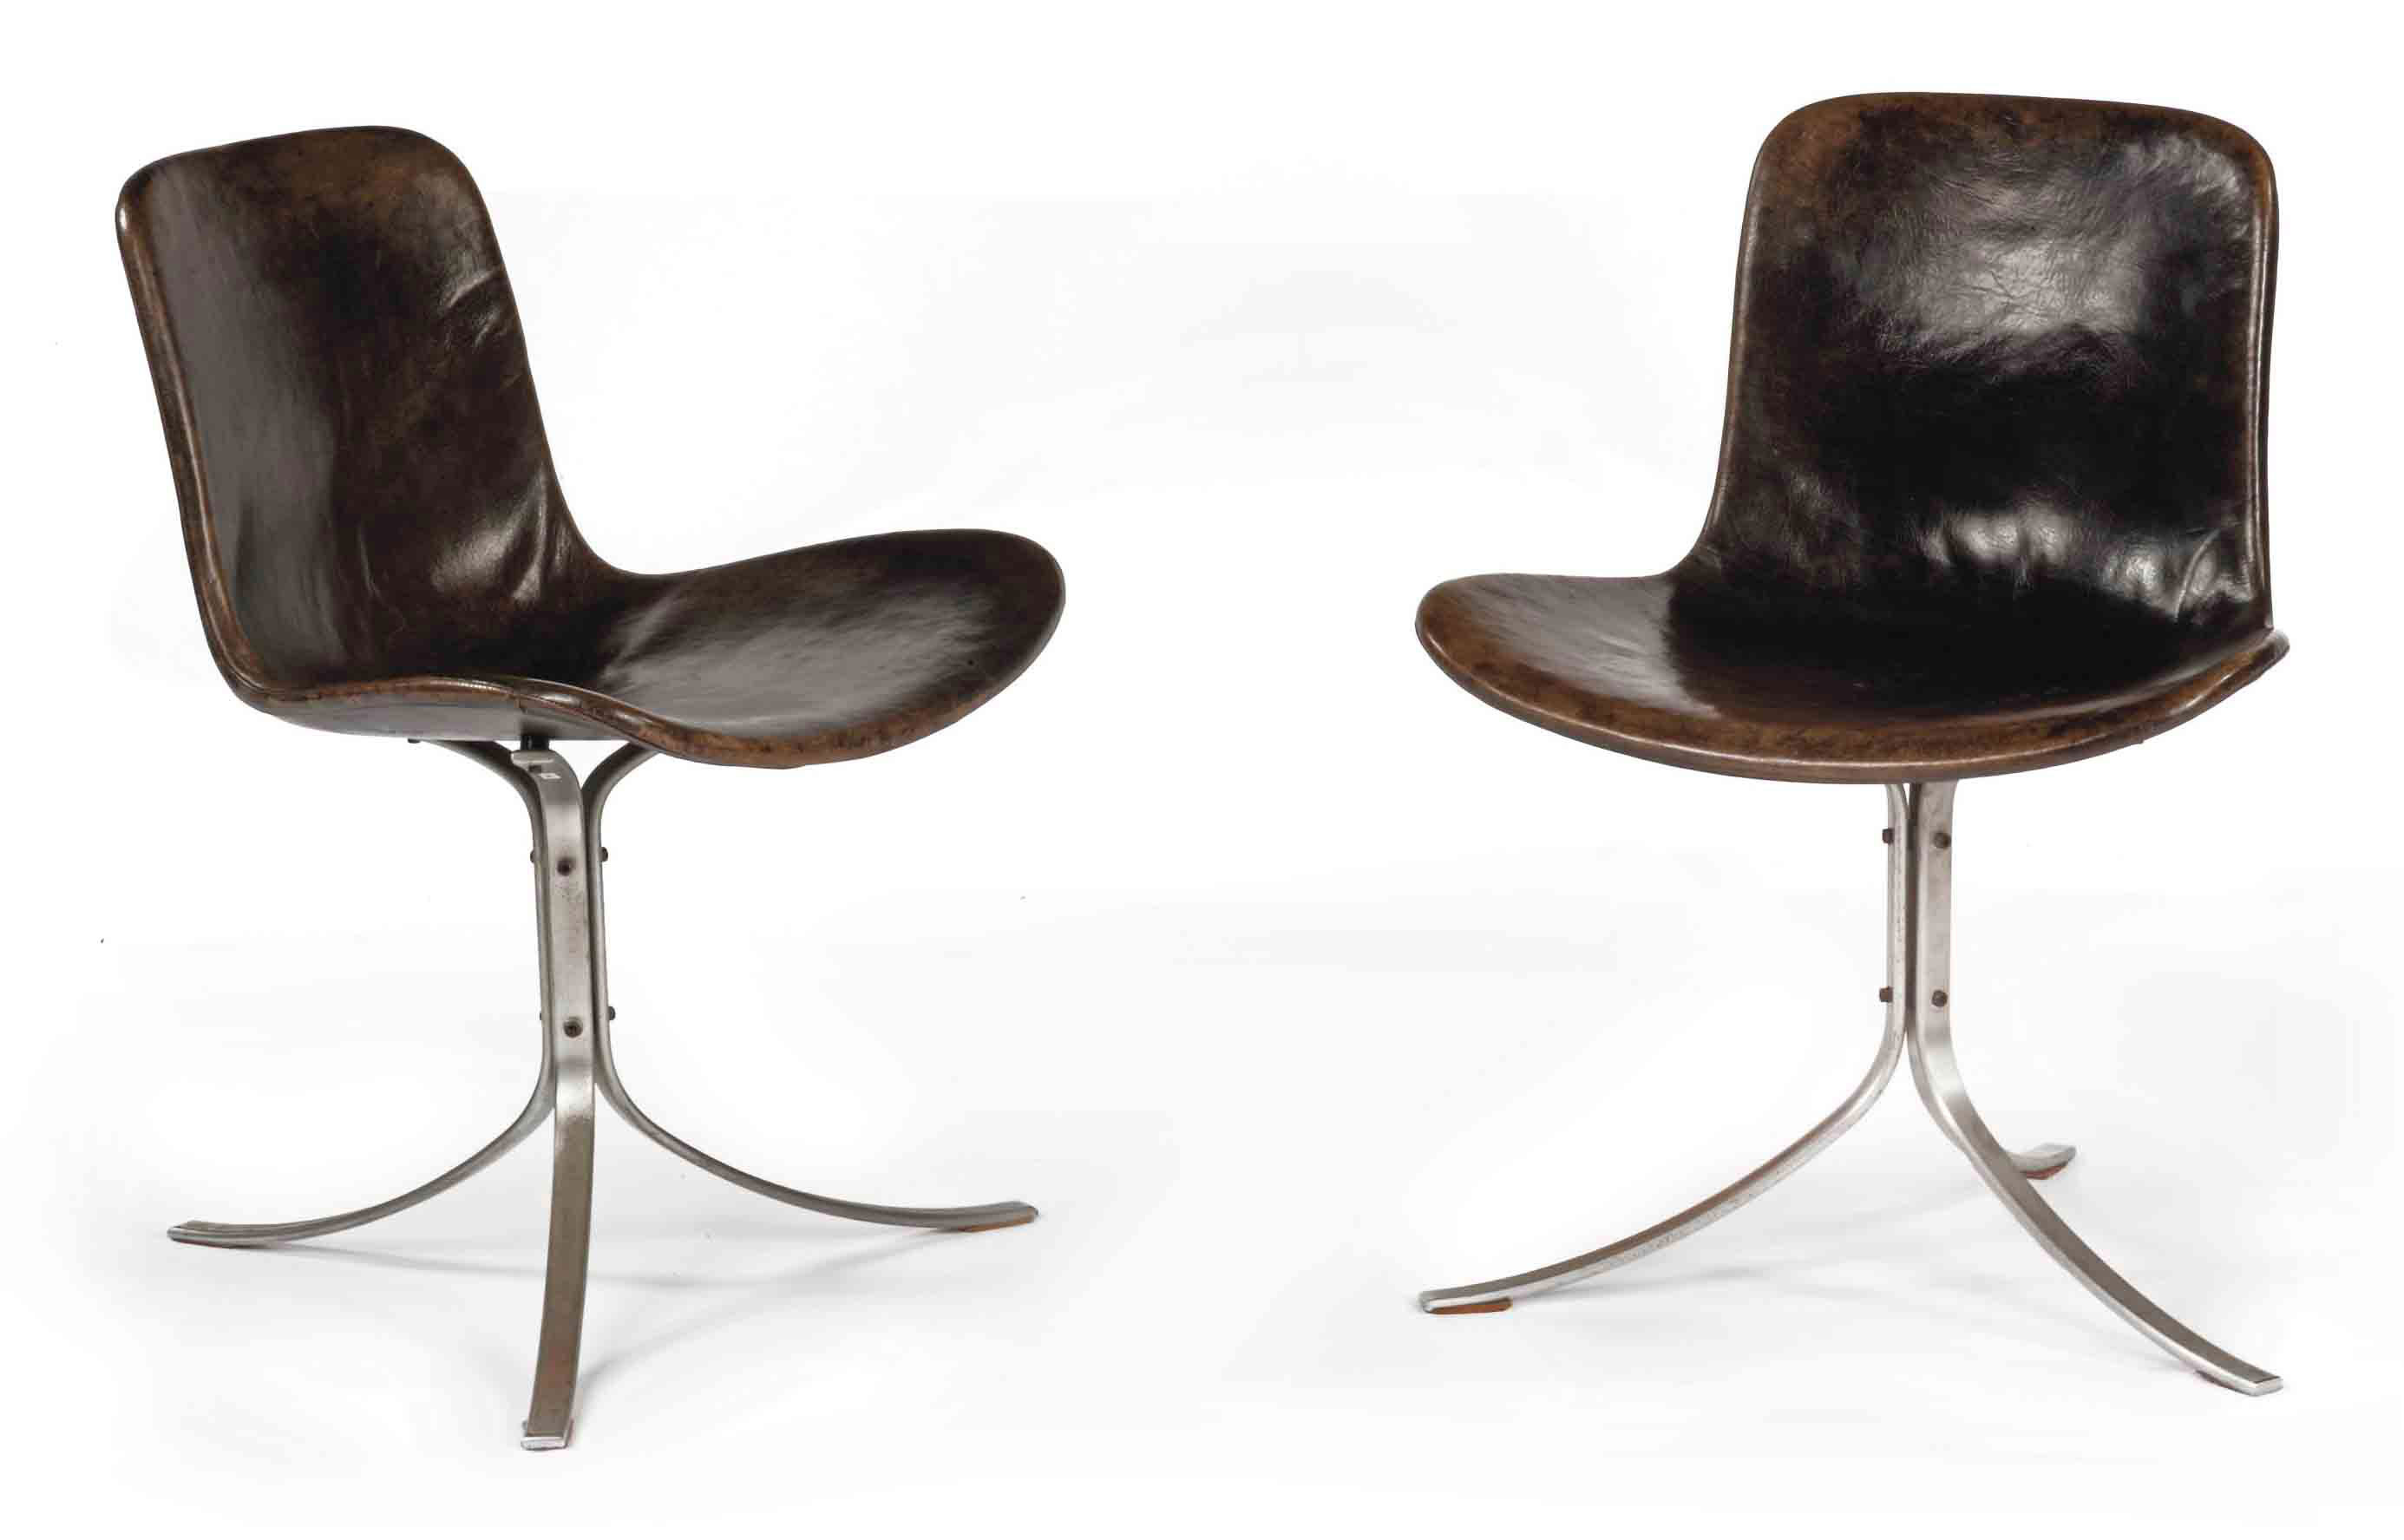 A PAIR OF CHROMED STEEL 'PK9' OR 'TULIP' SIDE CHAIRS